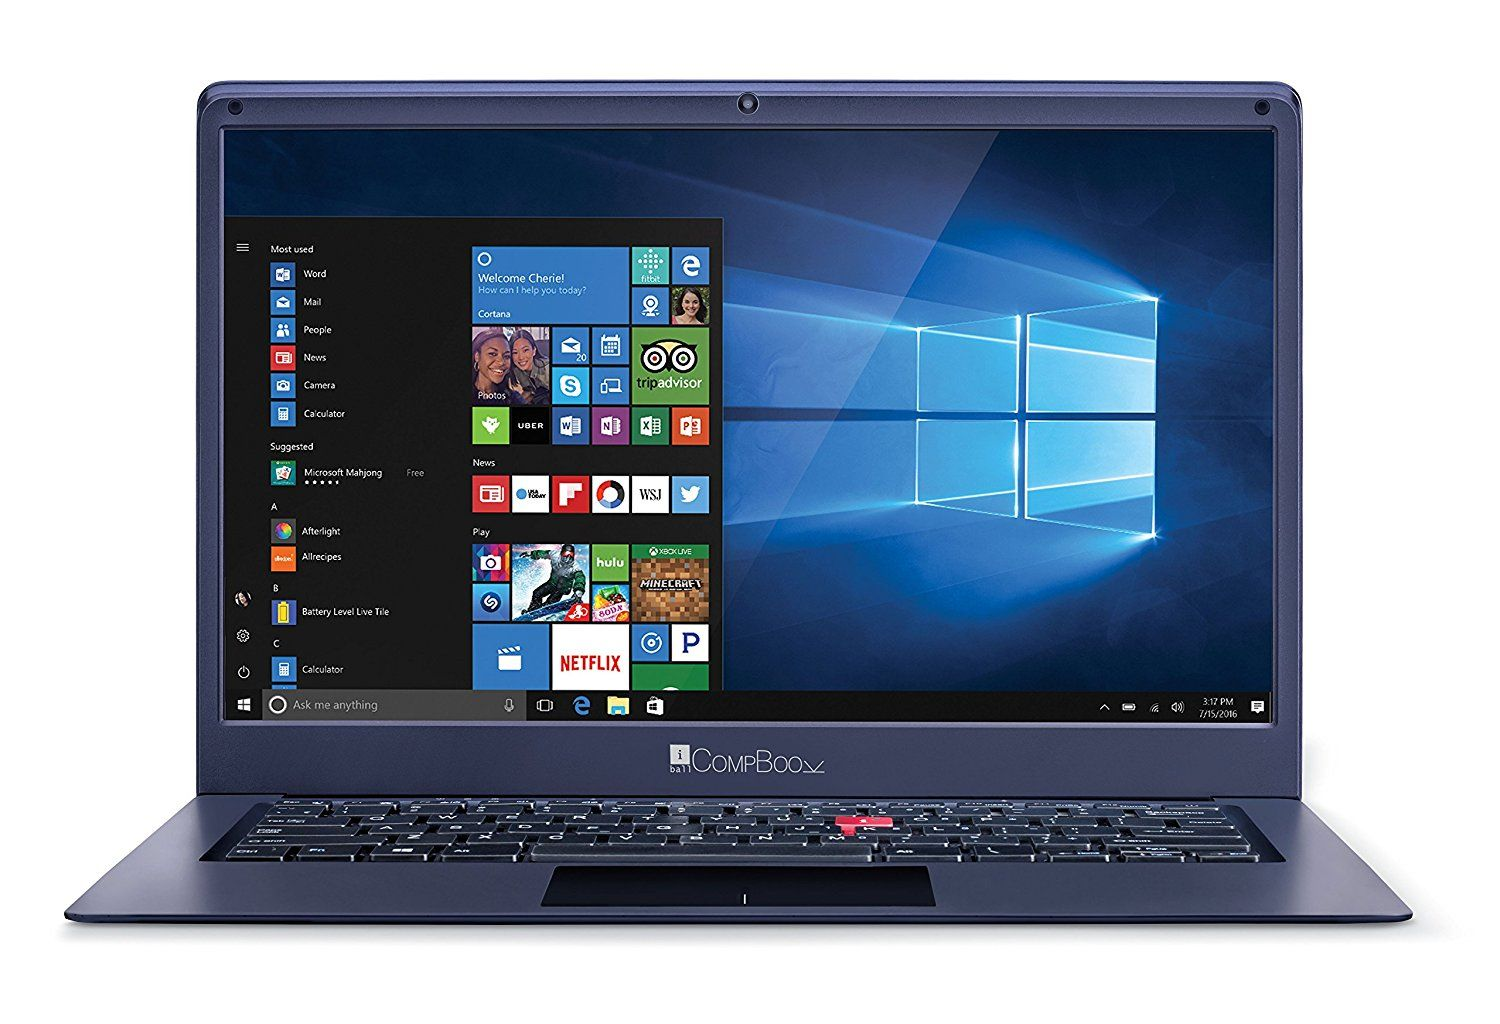 Buy iBall CompBook Exemplaire+ 14inch Laptop (Atom x5